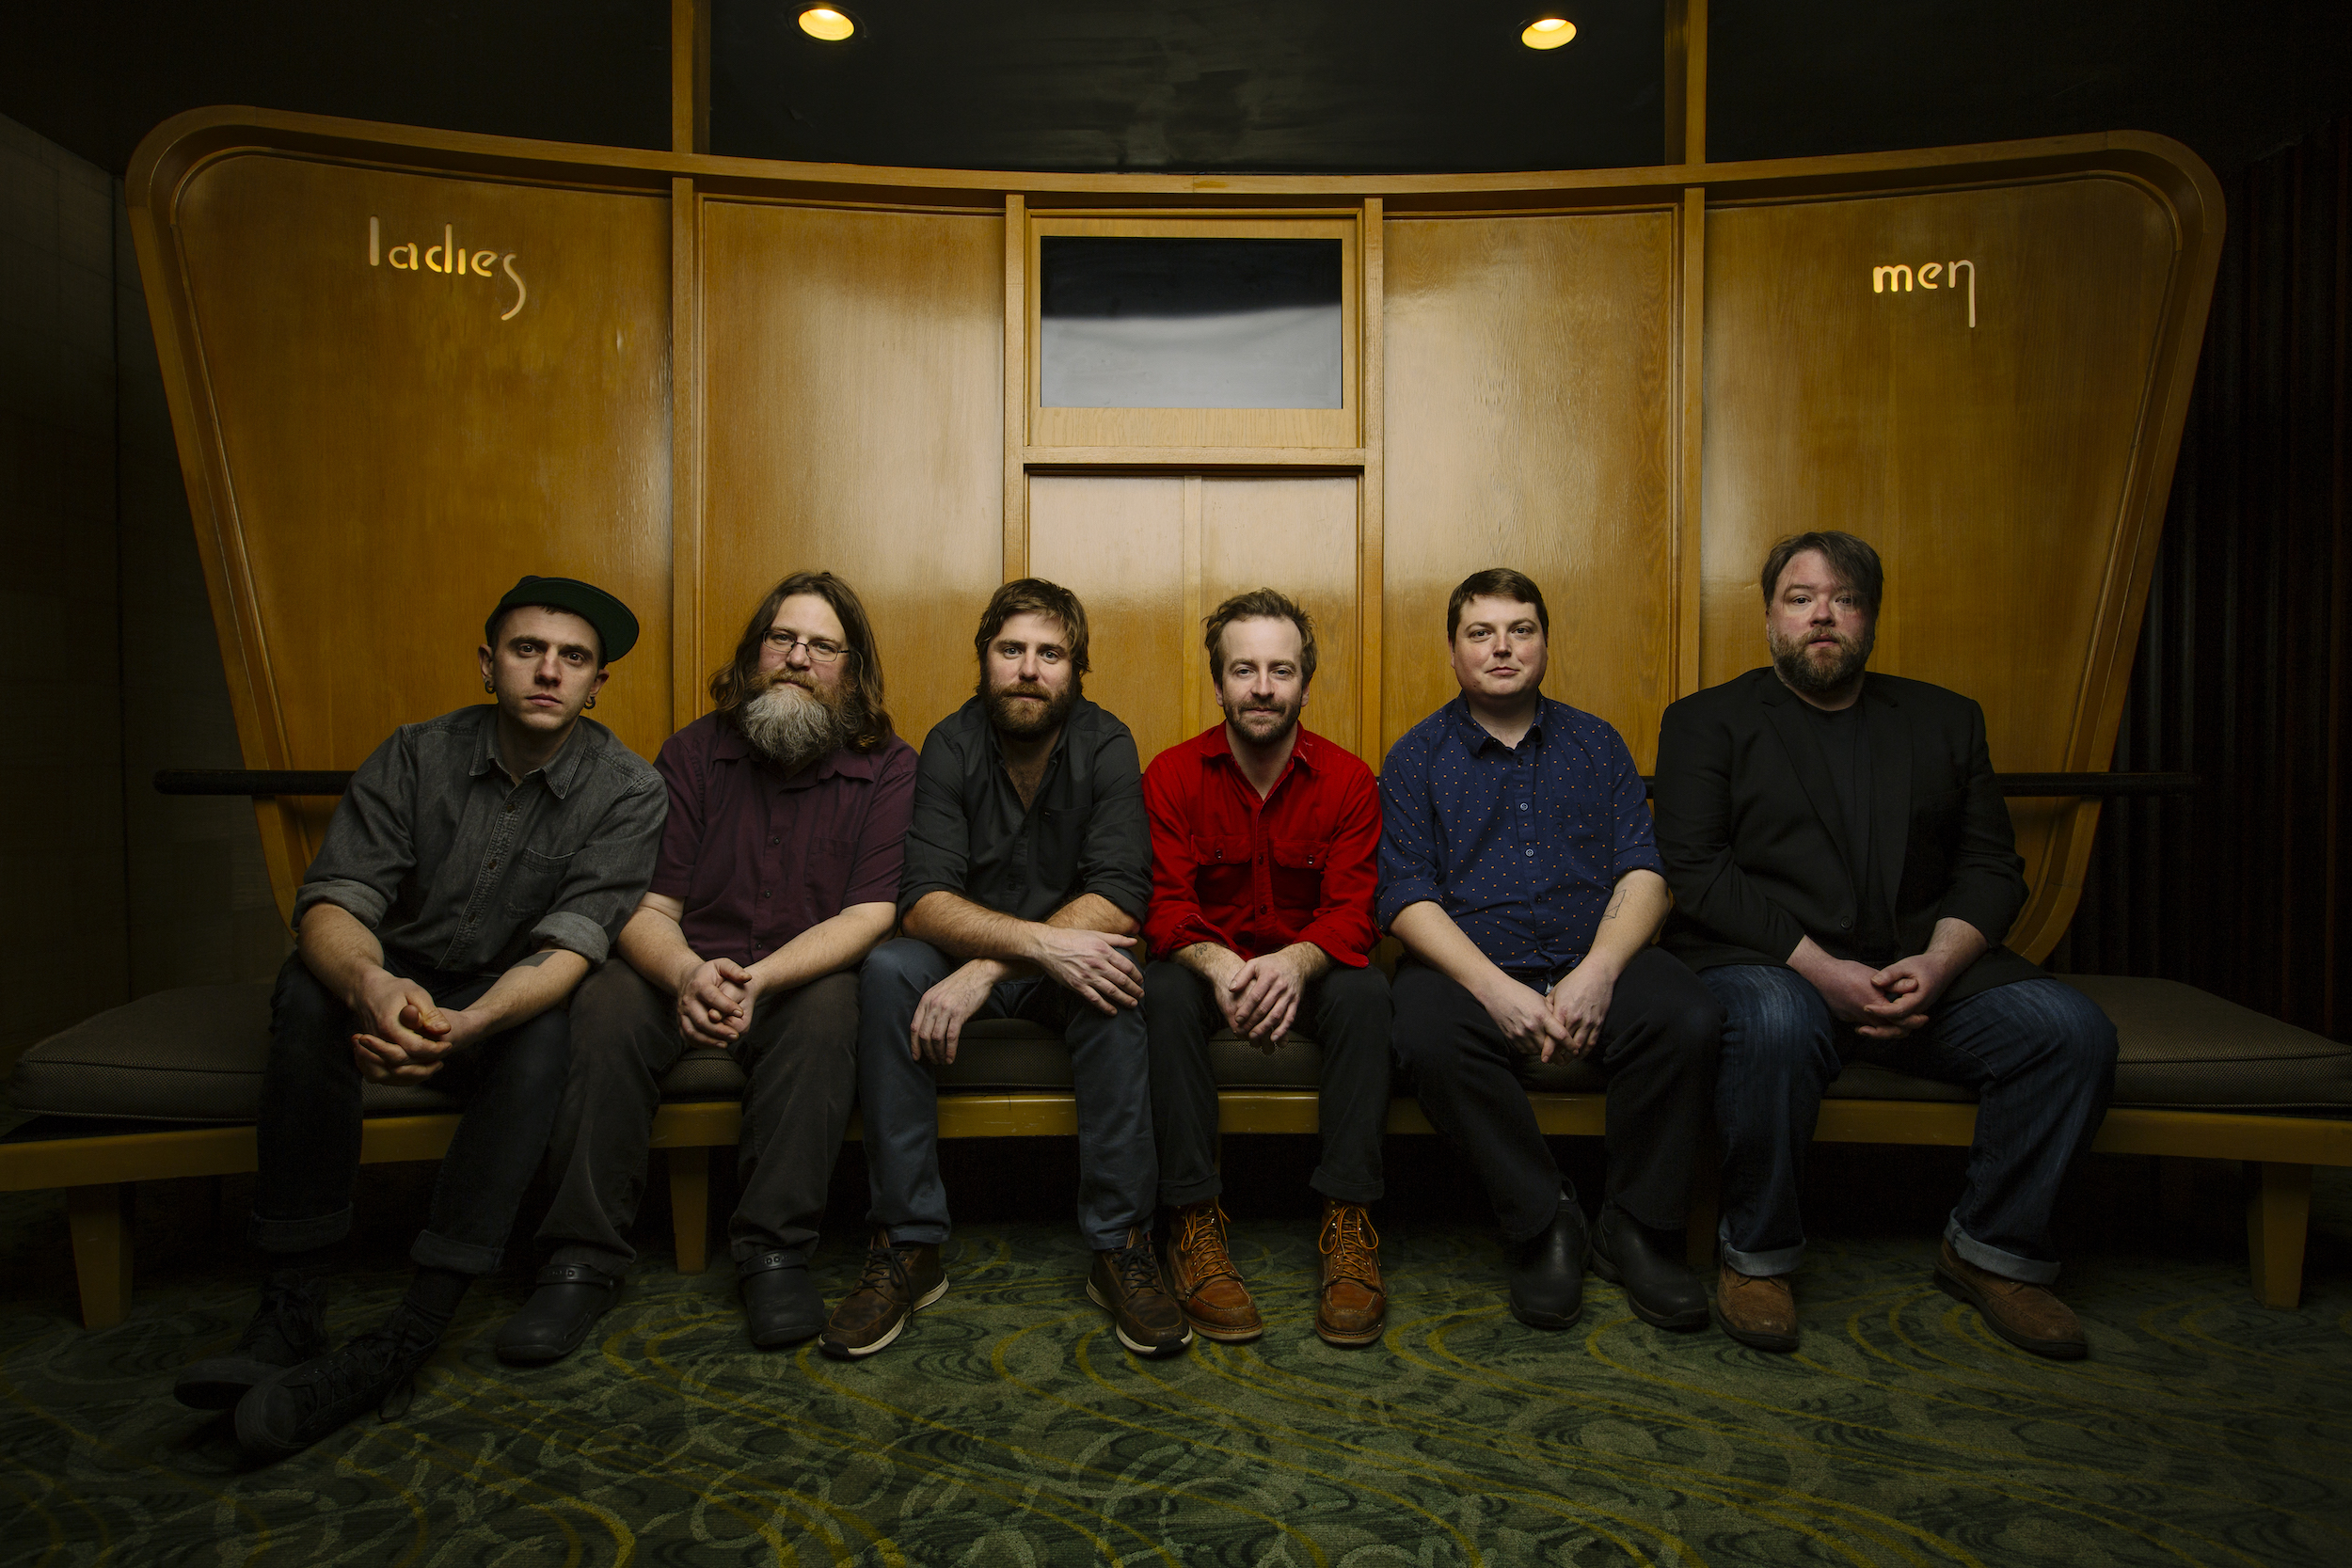 (SOLD OUT) Trampled by Turtles @ HI-FI Annex: